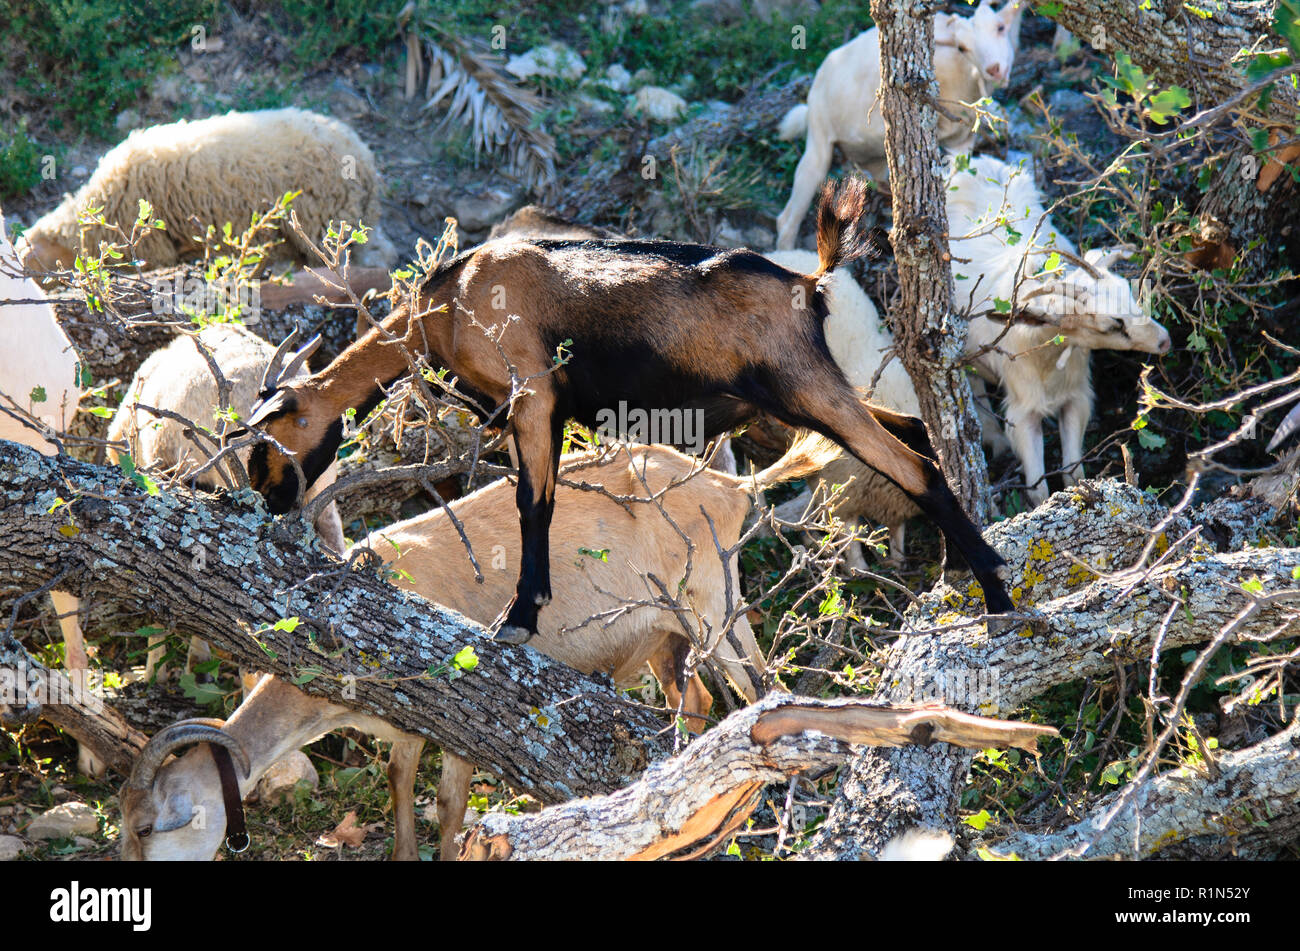 Goats and sheep graze among the rocks, one is climbing up a fallen tree - Stock Image